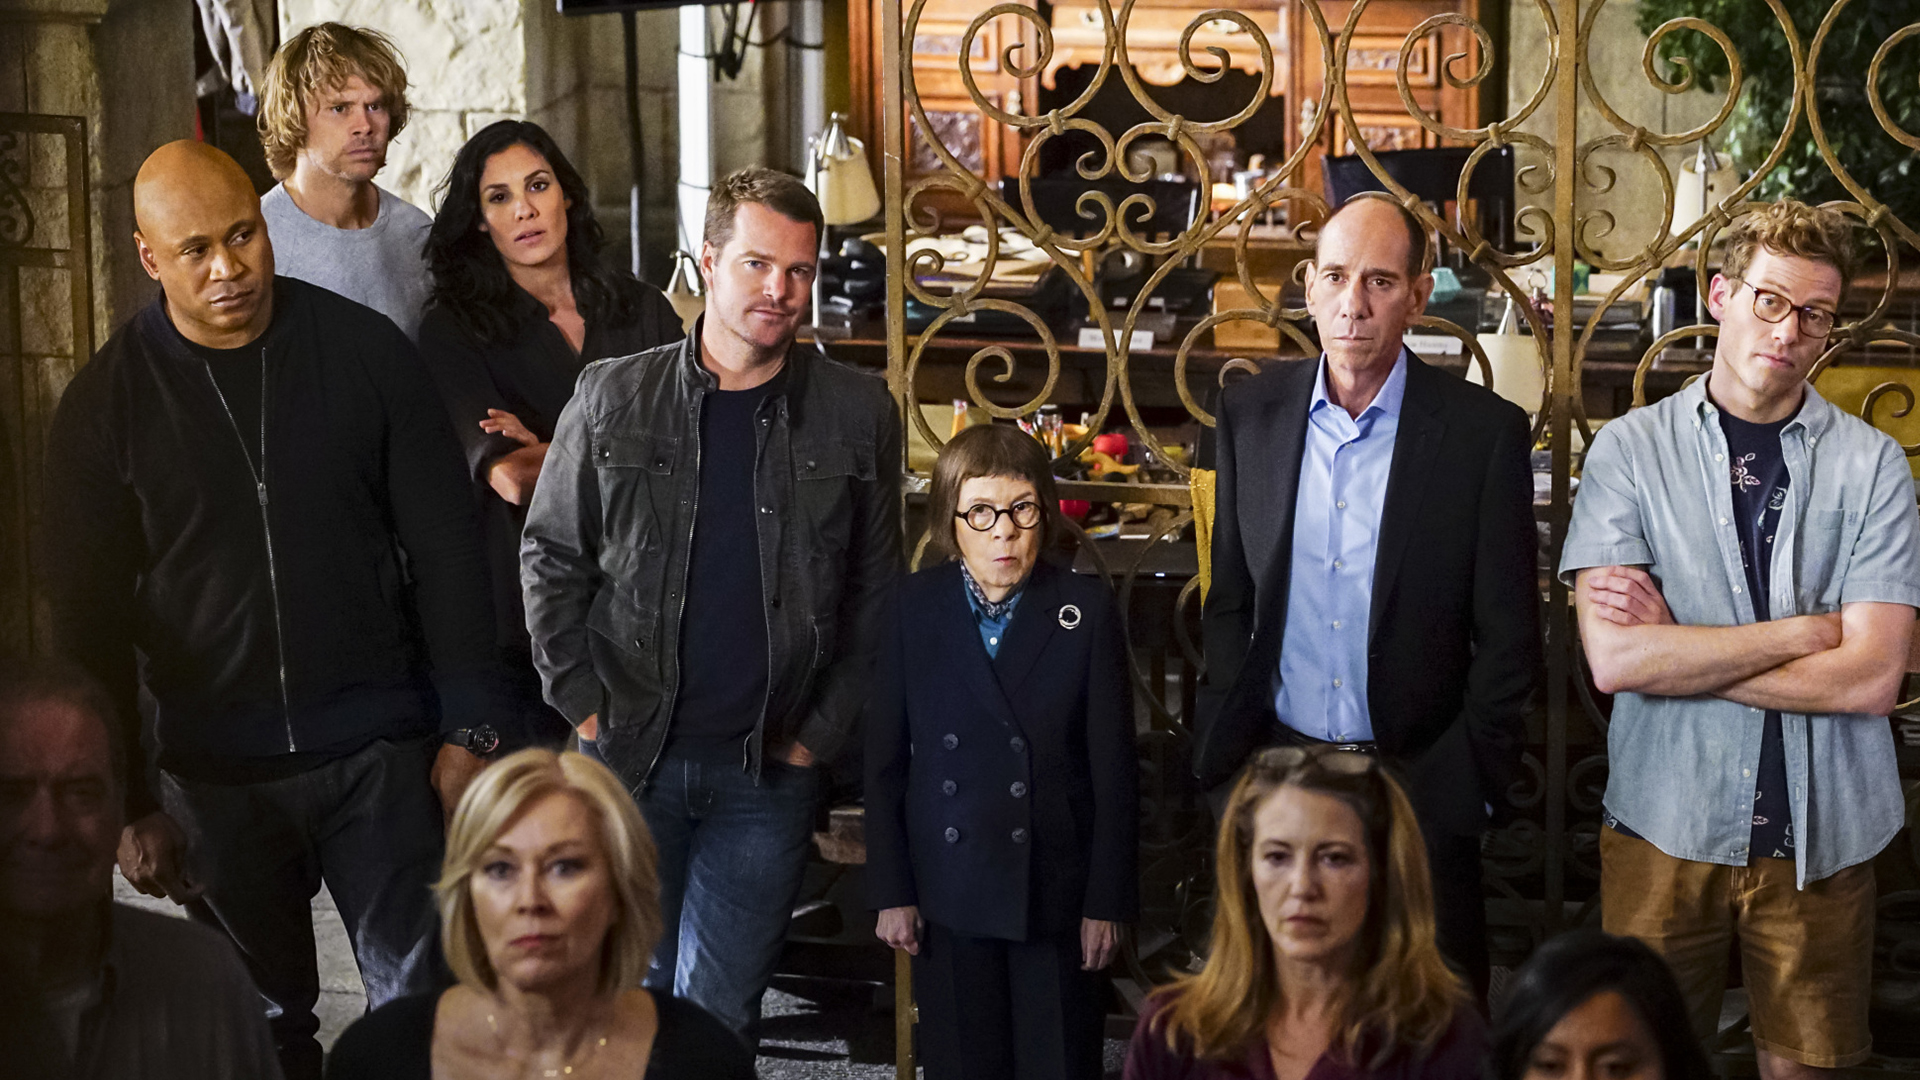 The NCIS: Los Angeles team is back!